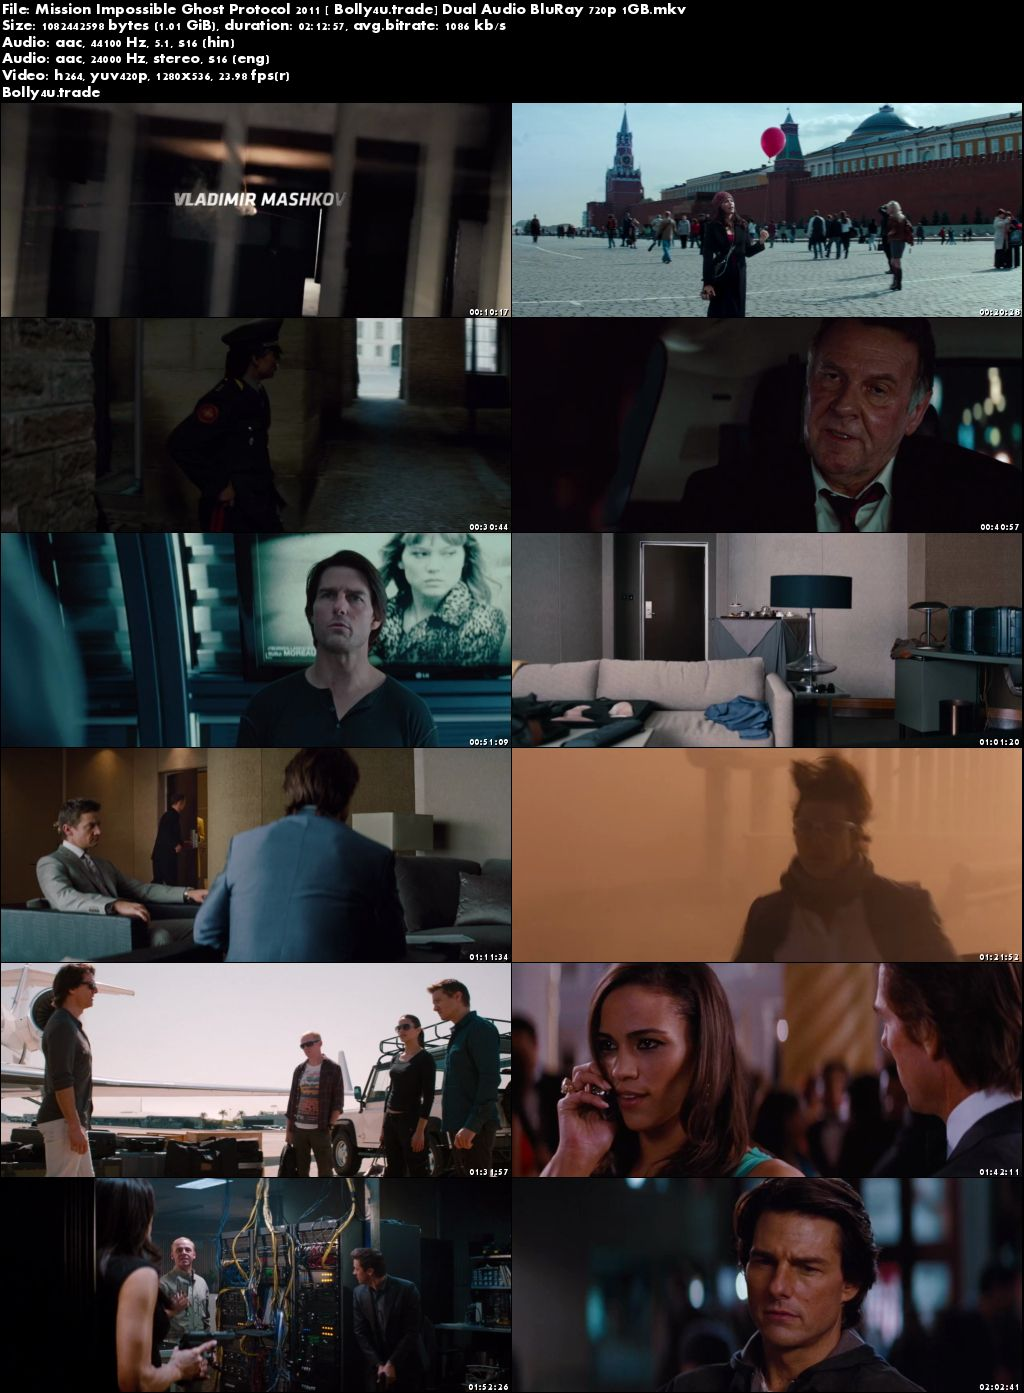 Mission Impossible Ghost Protocol 2011 BRRip 1GB Hindi Dual Audio 720p Download